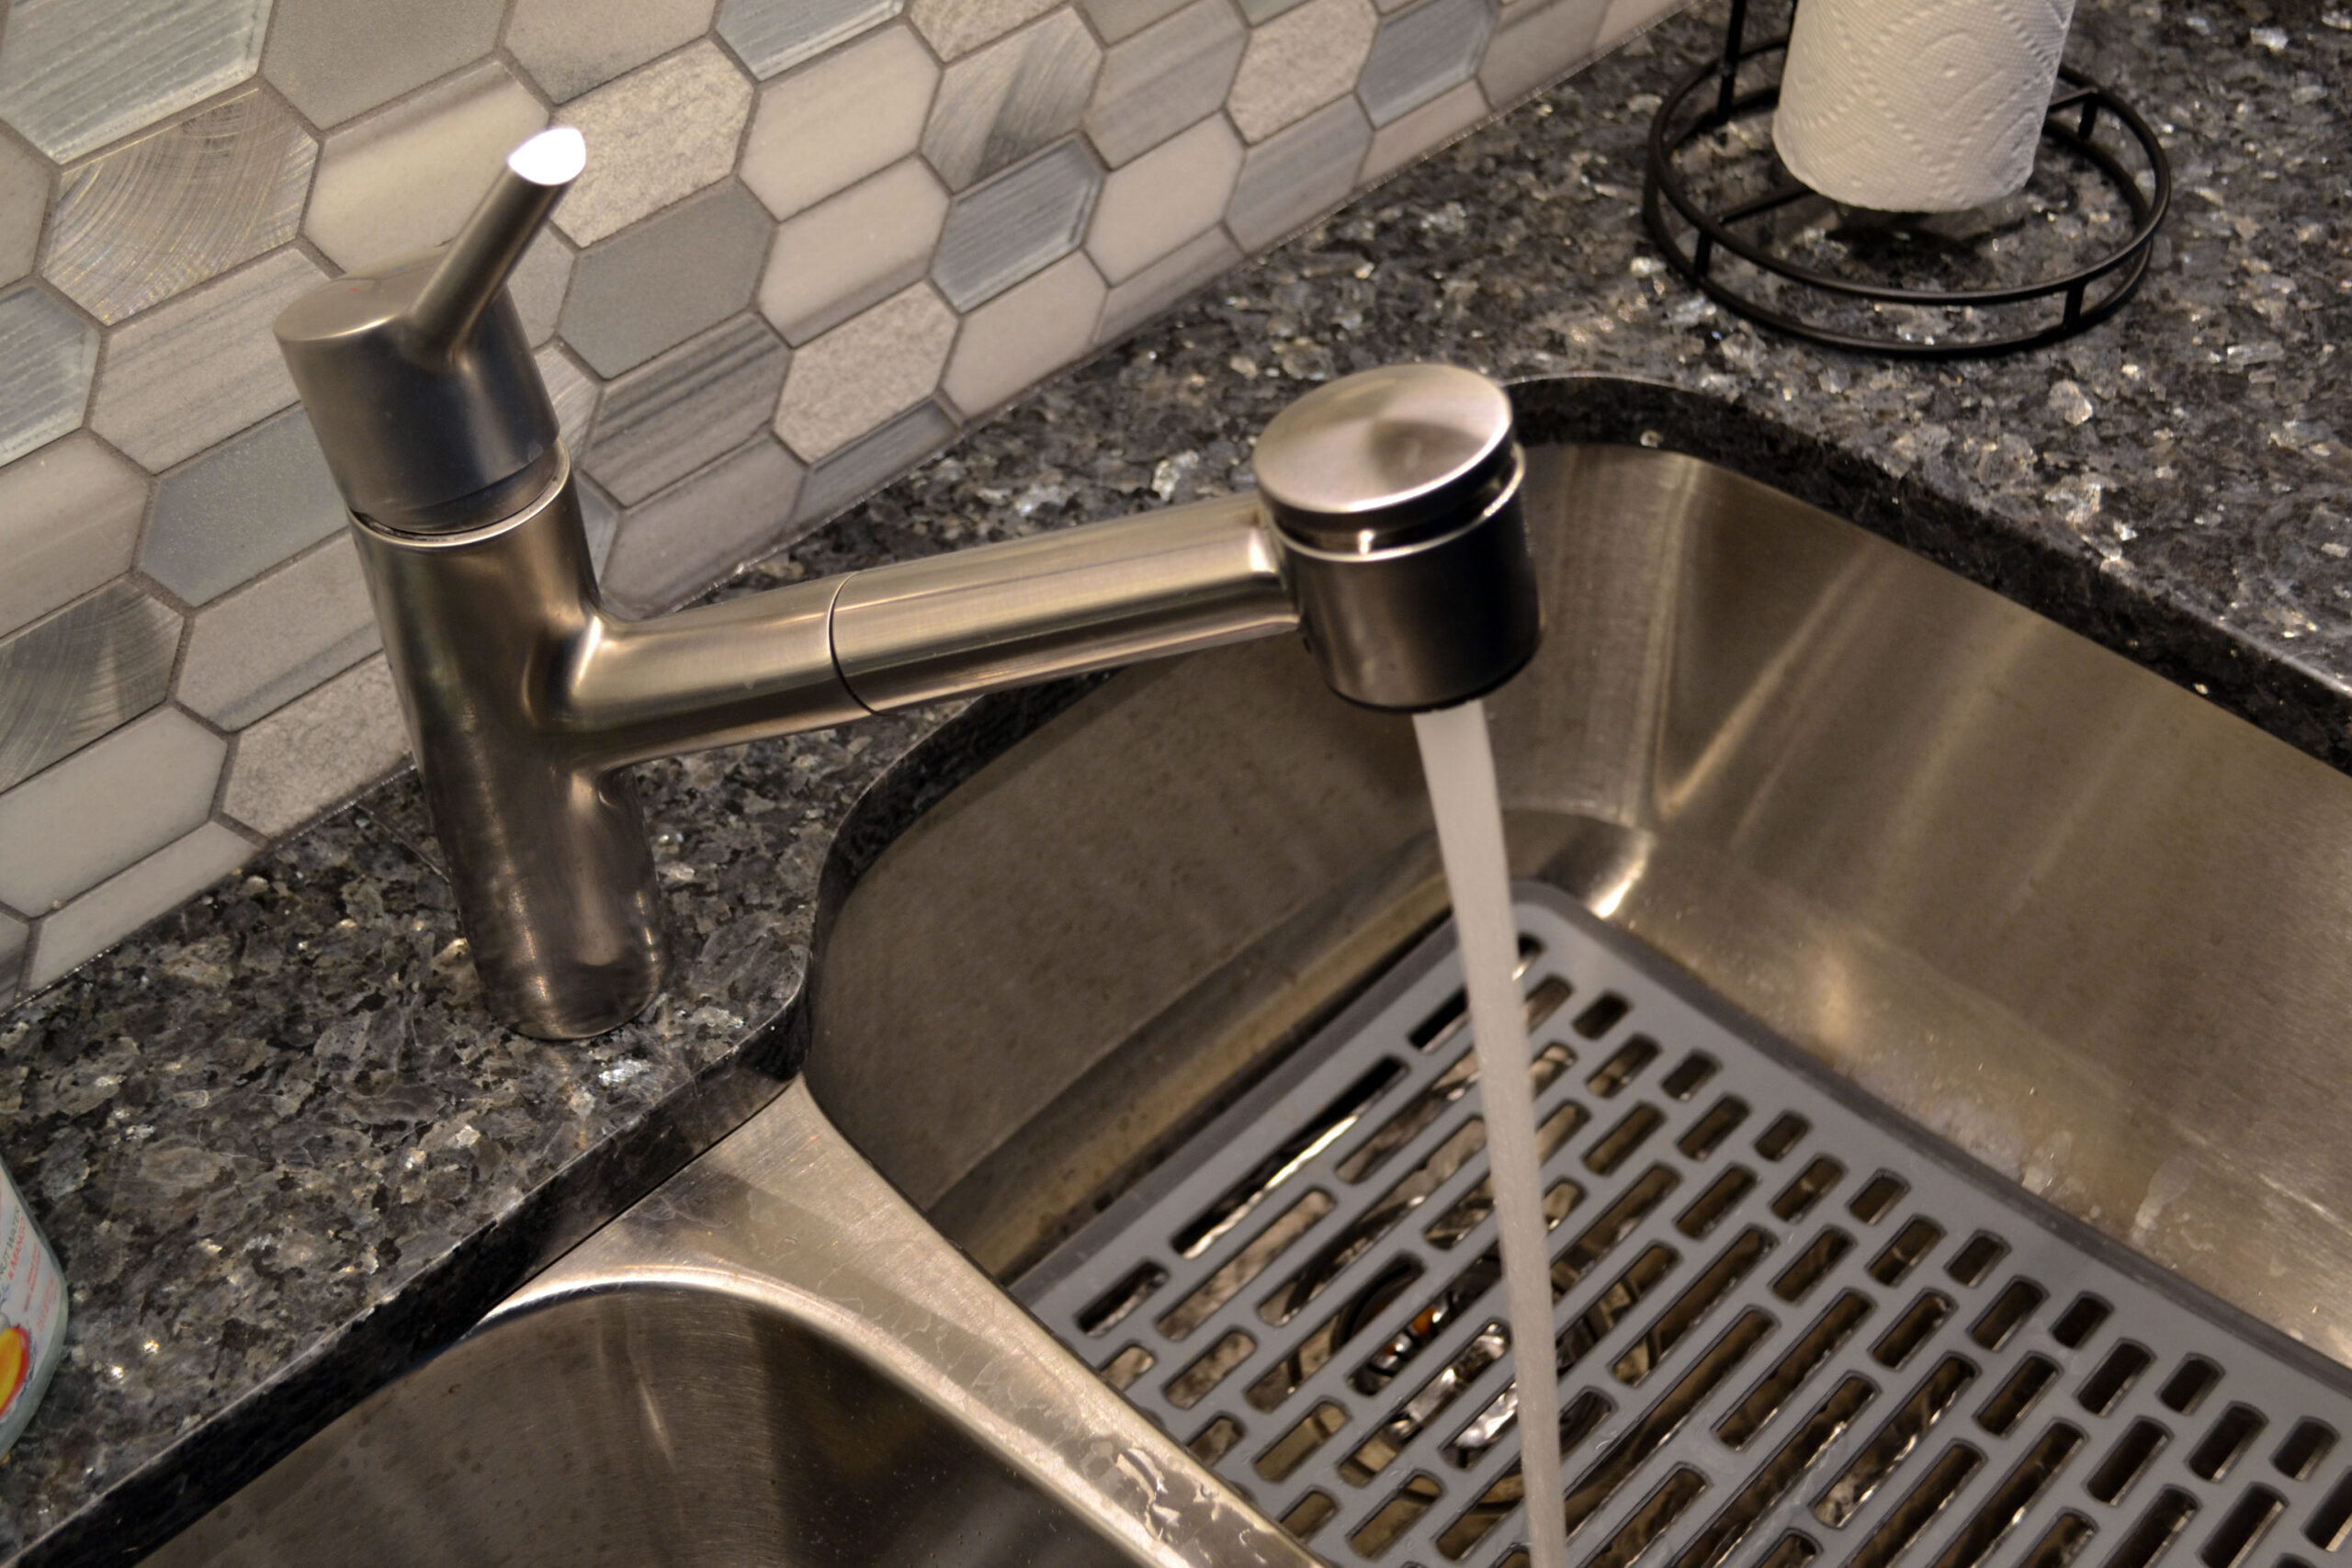 Stainless Steel Sink at Chicago Lake Shore Condo Transitional White Kitchen Remodeling Project